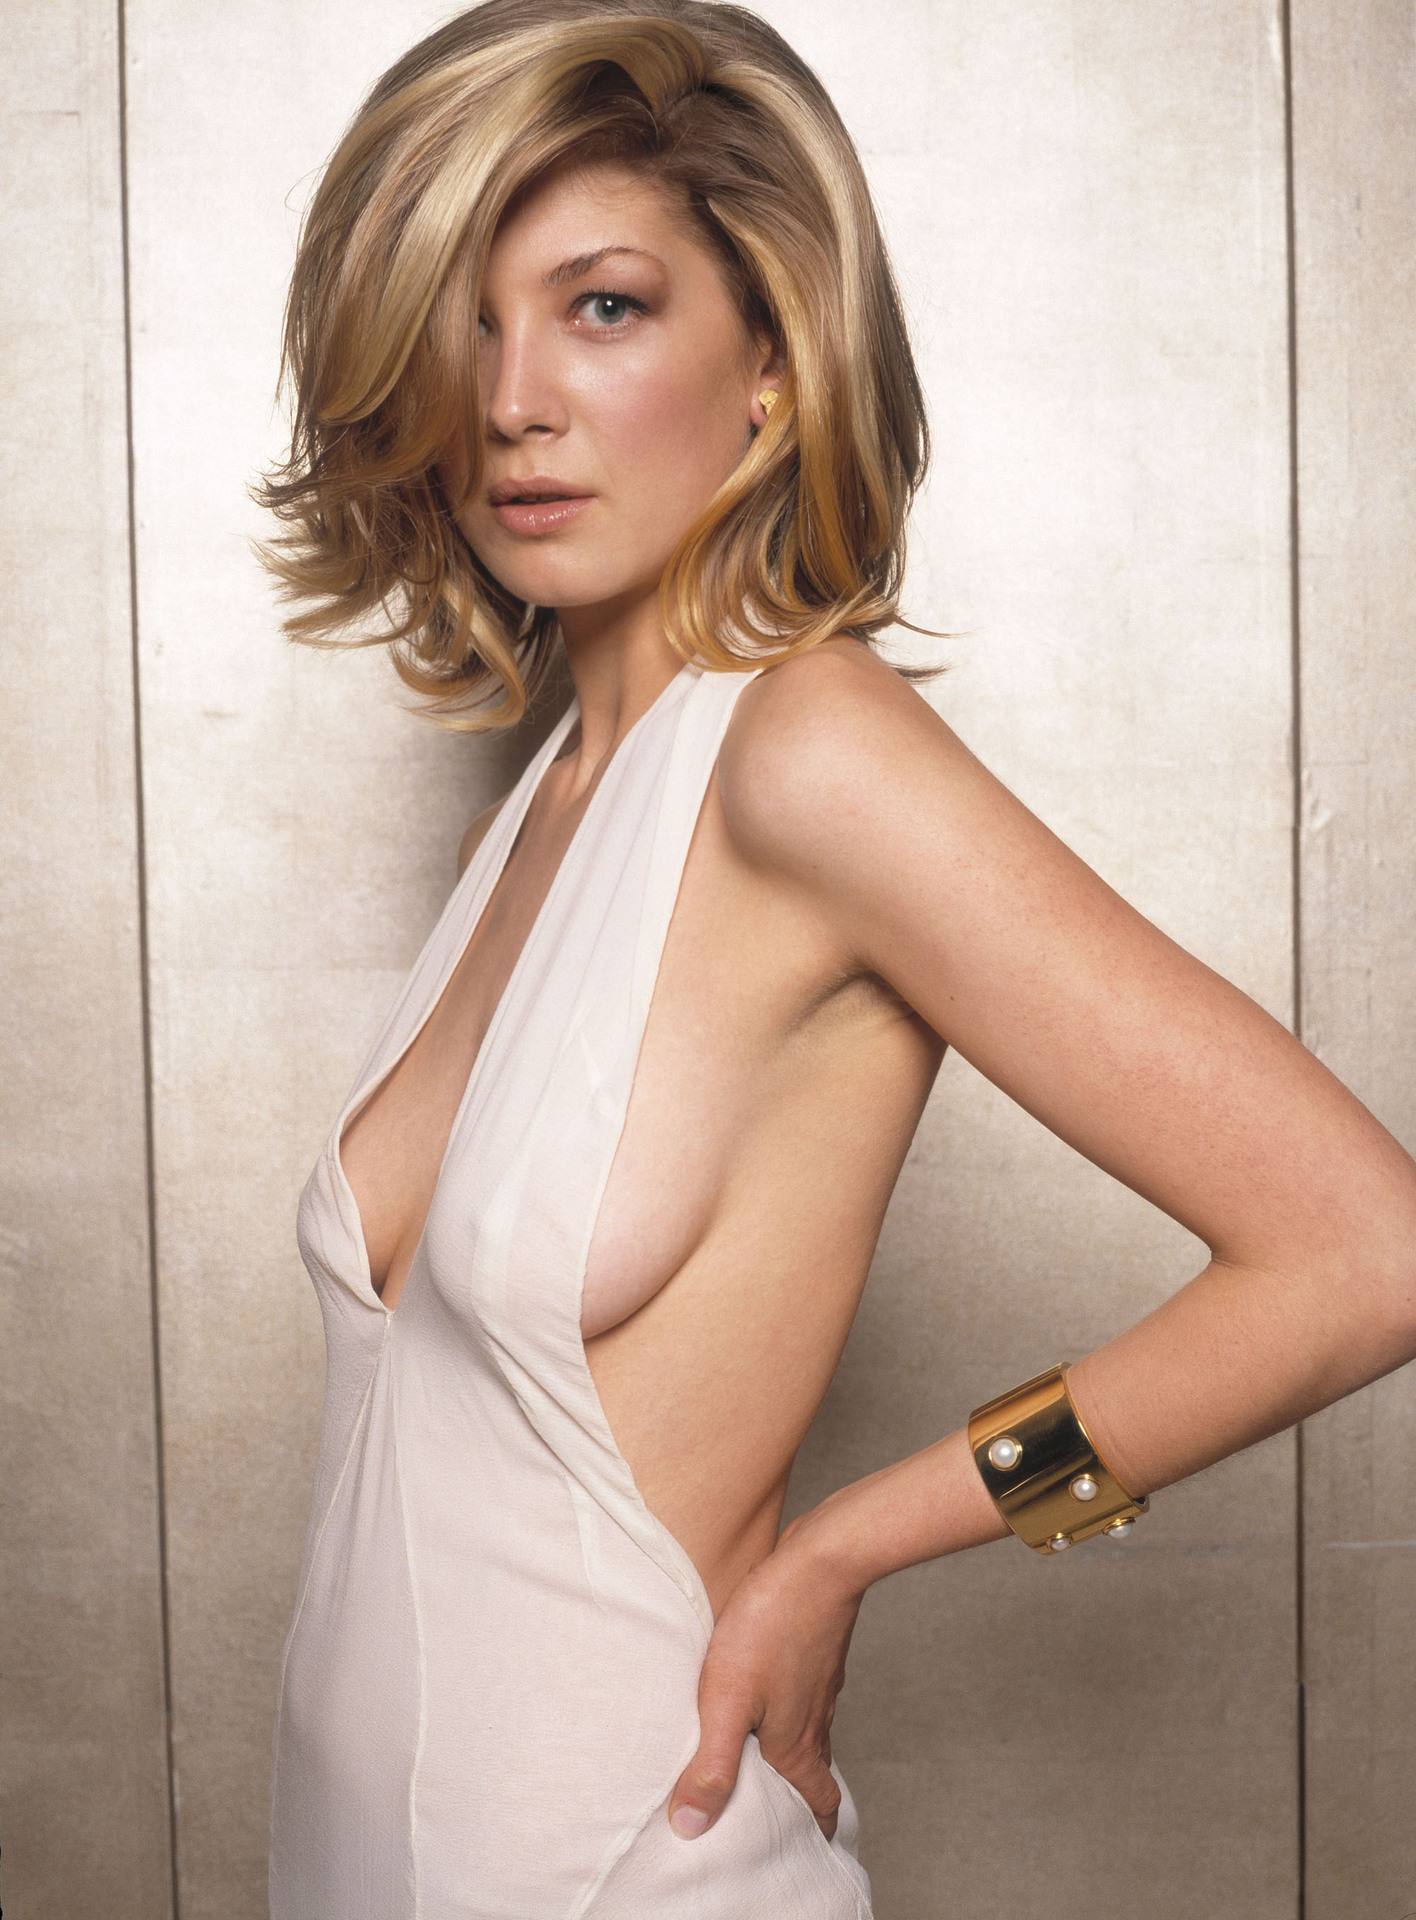 rosamund pike   actresses photo 779486   fanpop   page 2